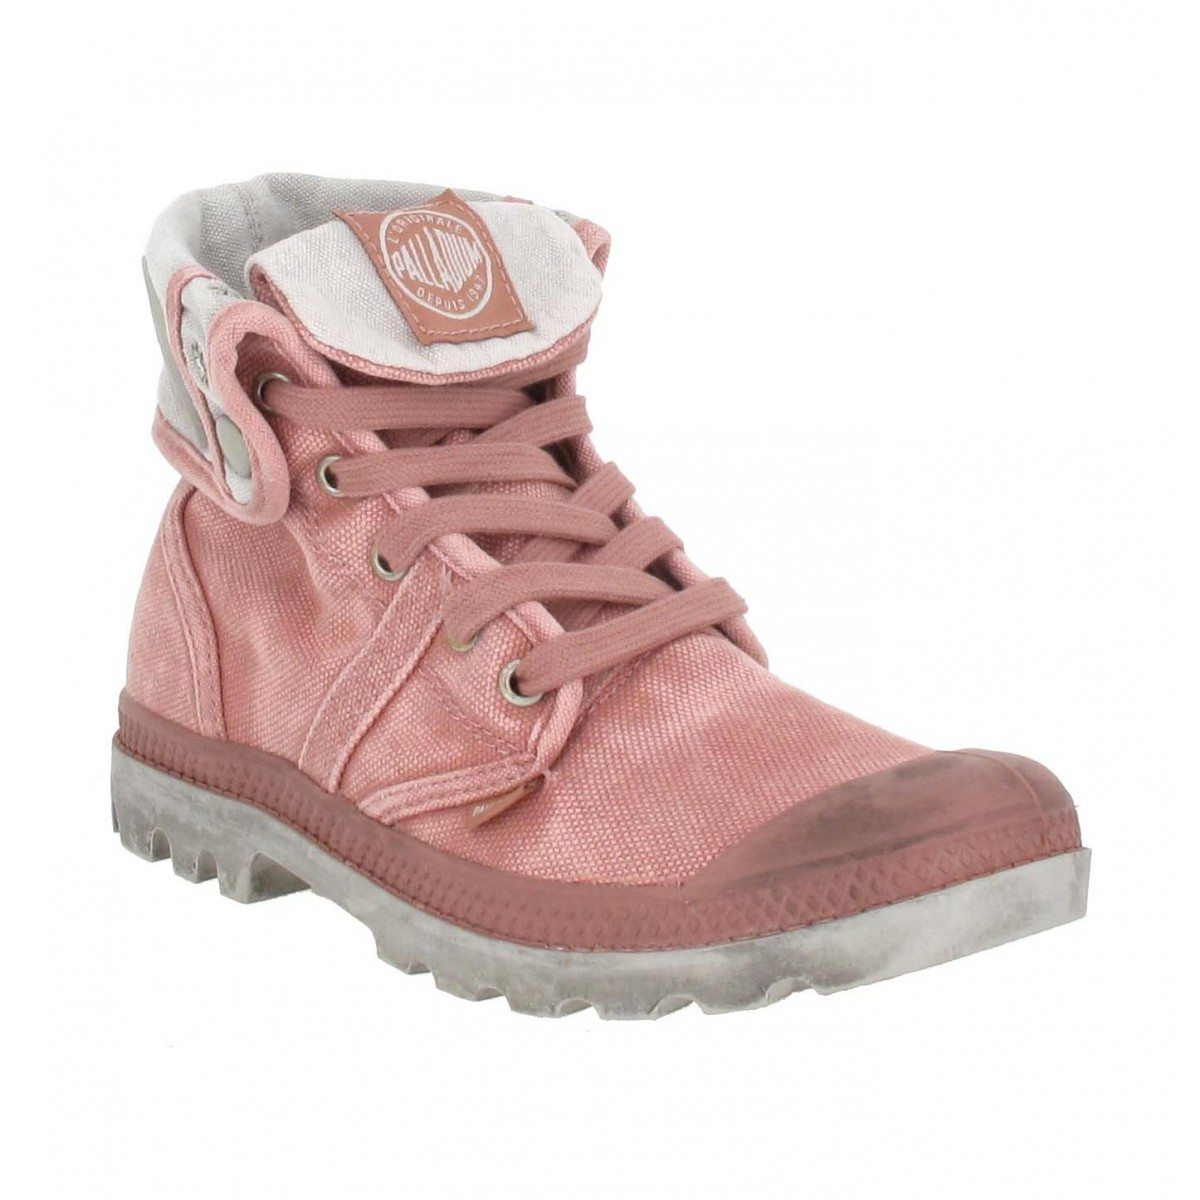 Bottines PALLADIUM US Baggy toile Femme Rose